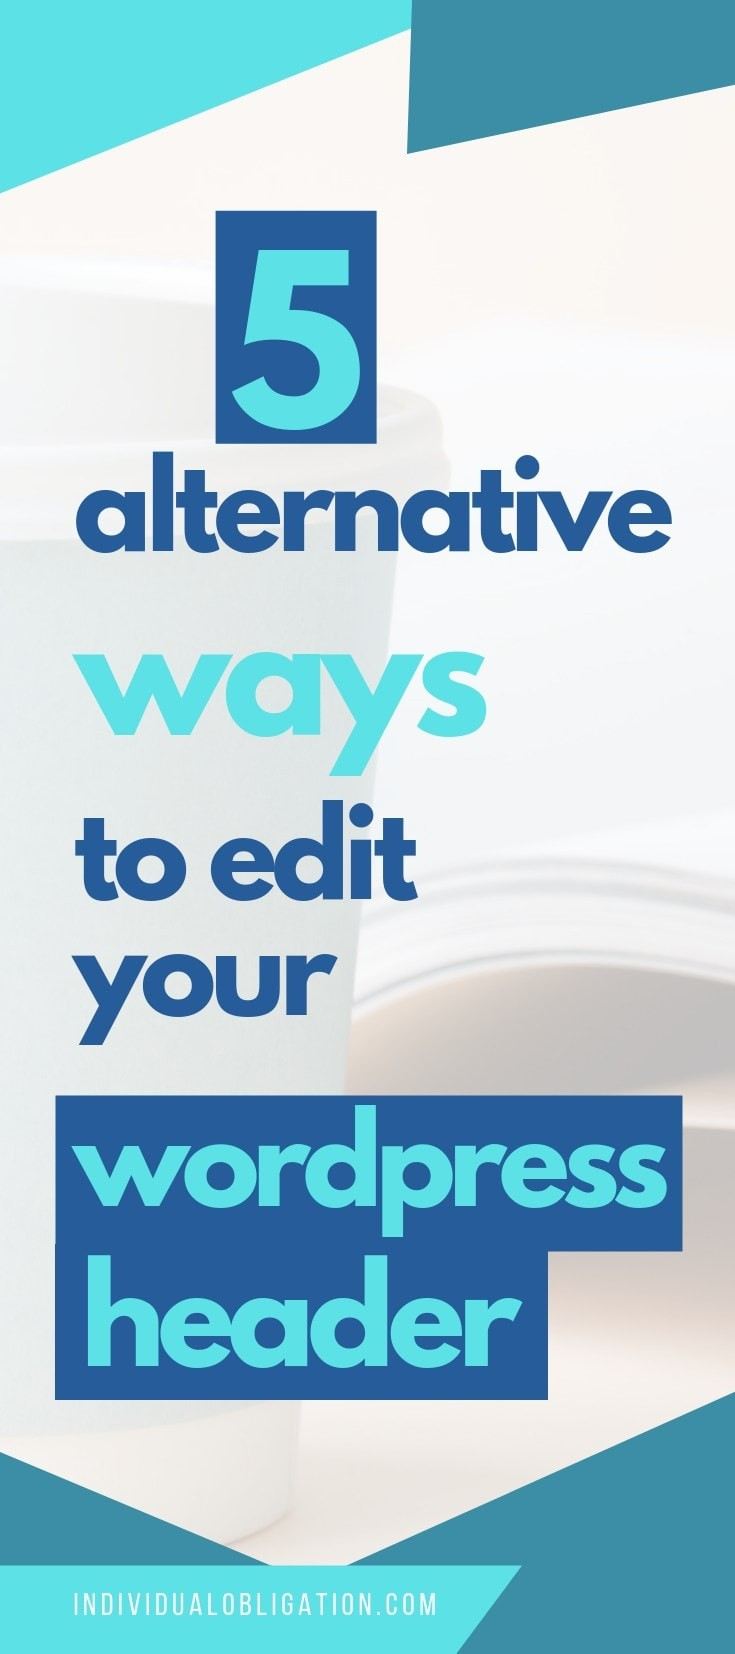 5 alternative ways to edit your WordPress header